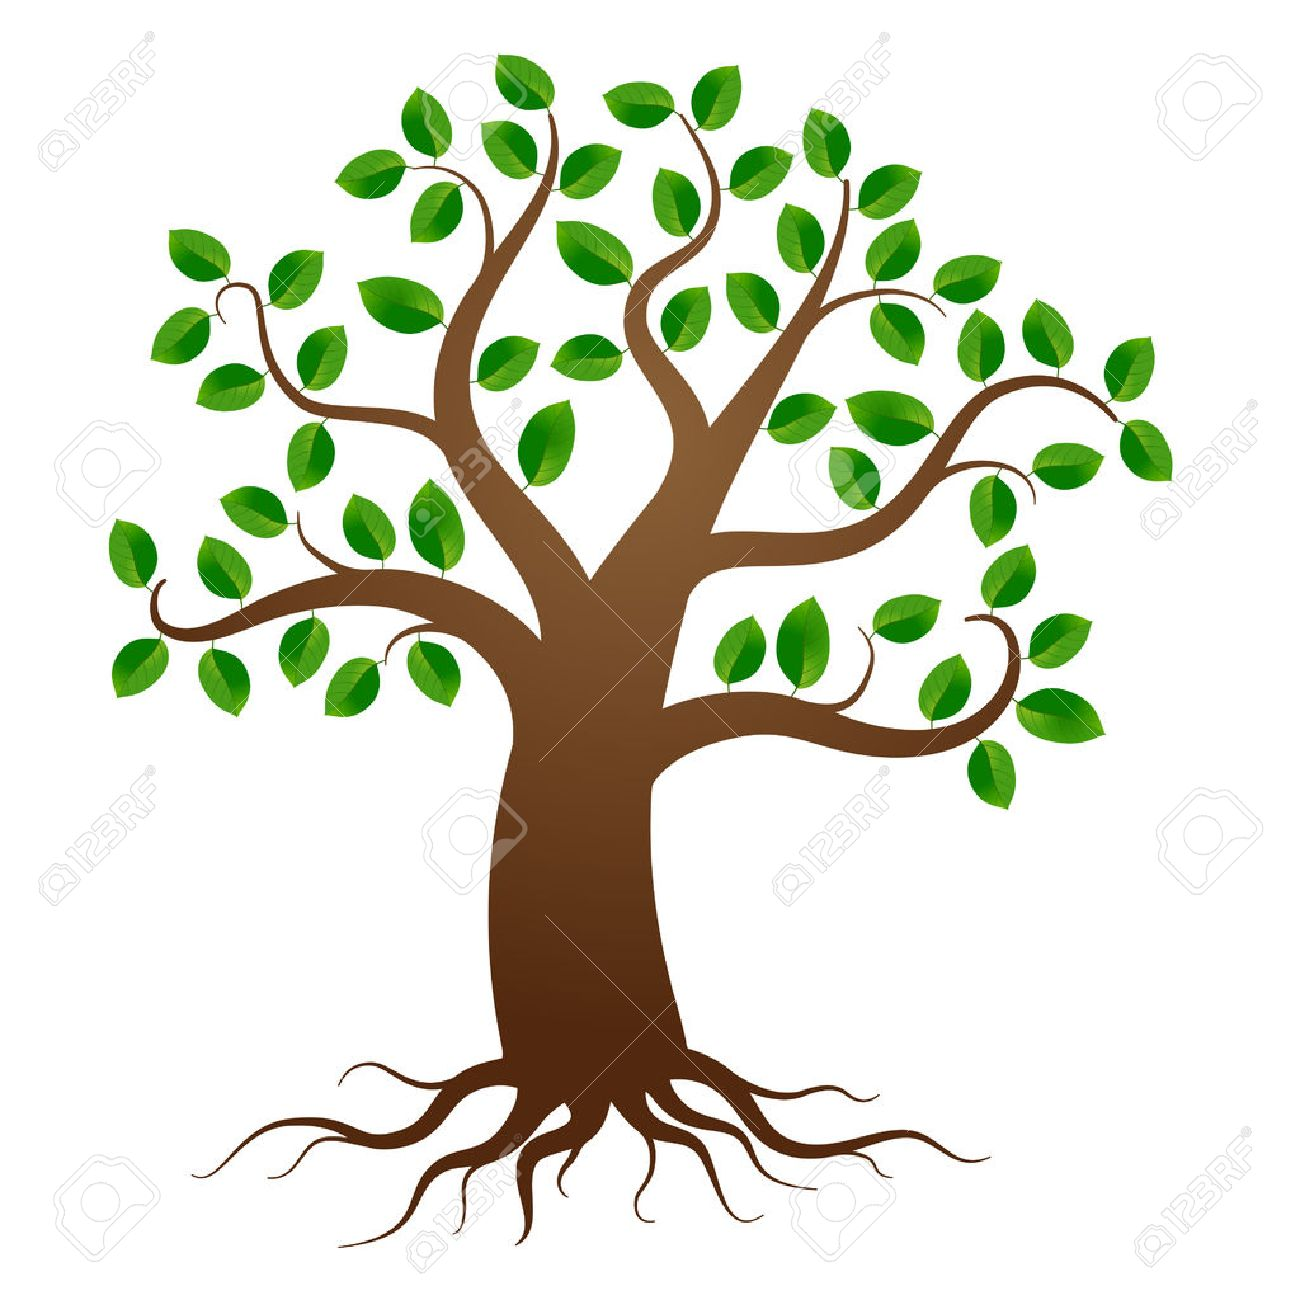 Green tree with roots on white background - 37626107